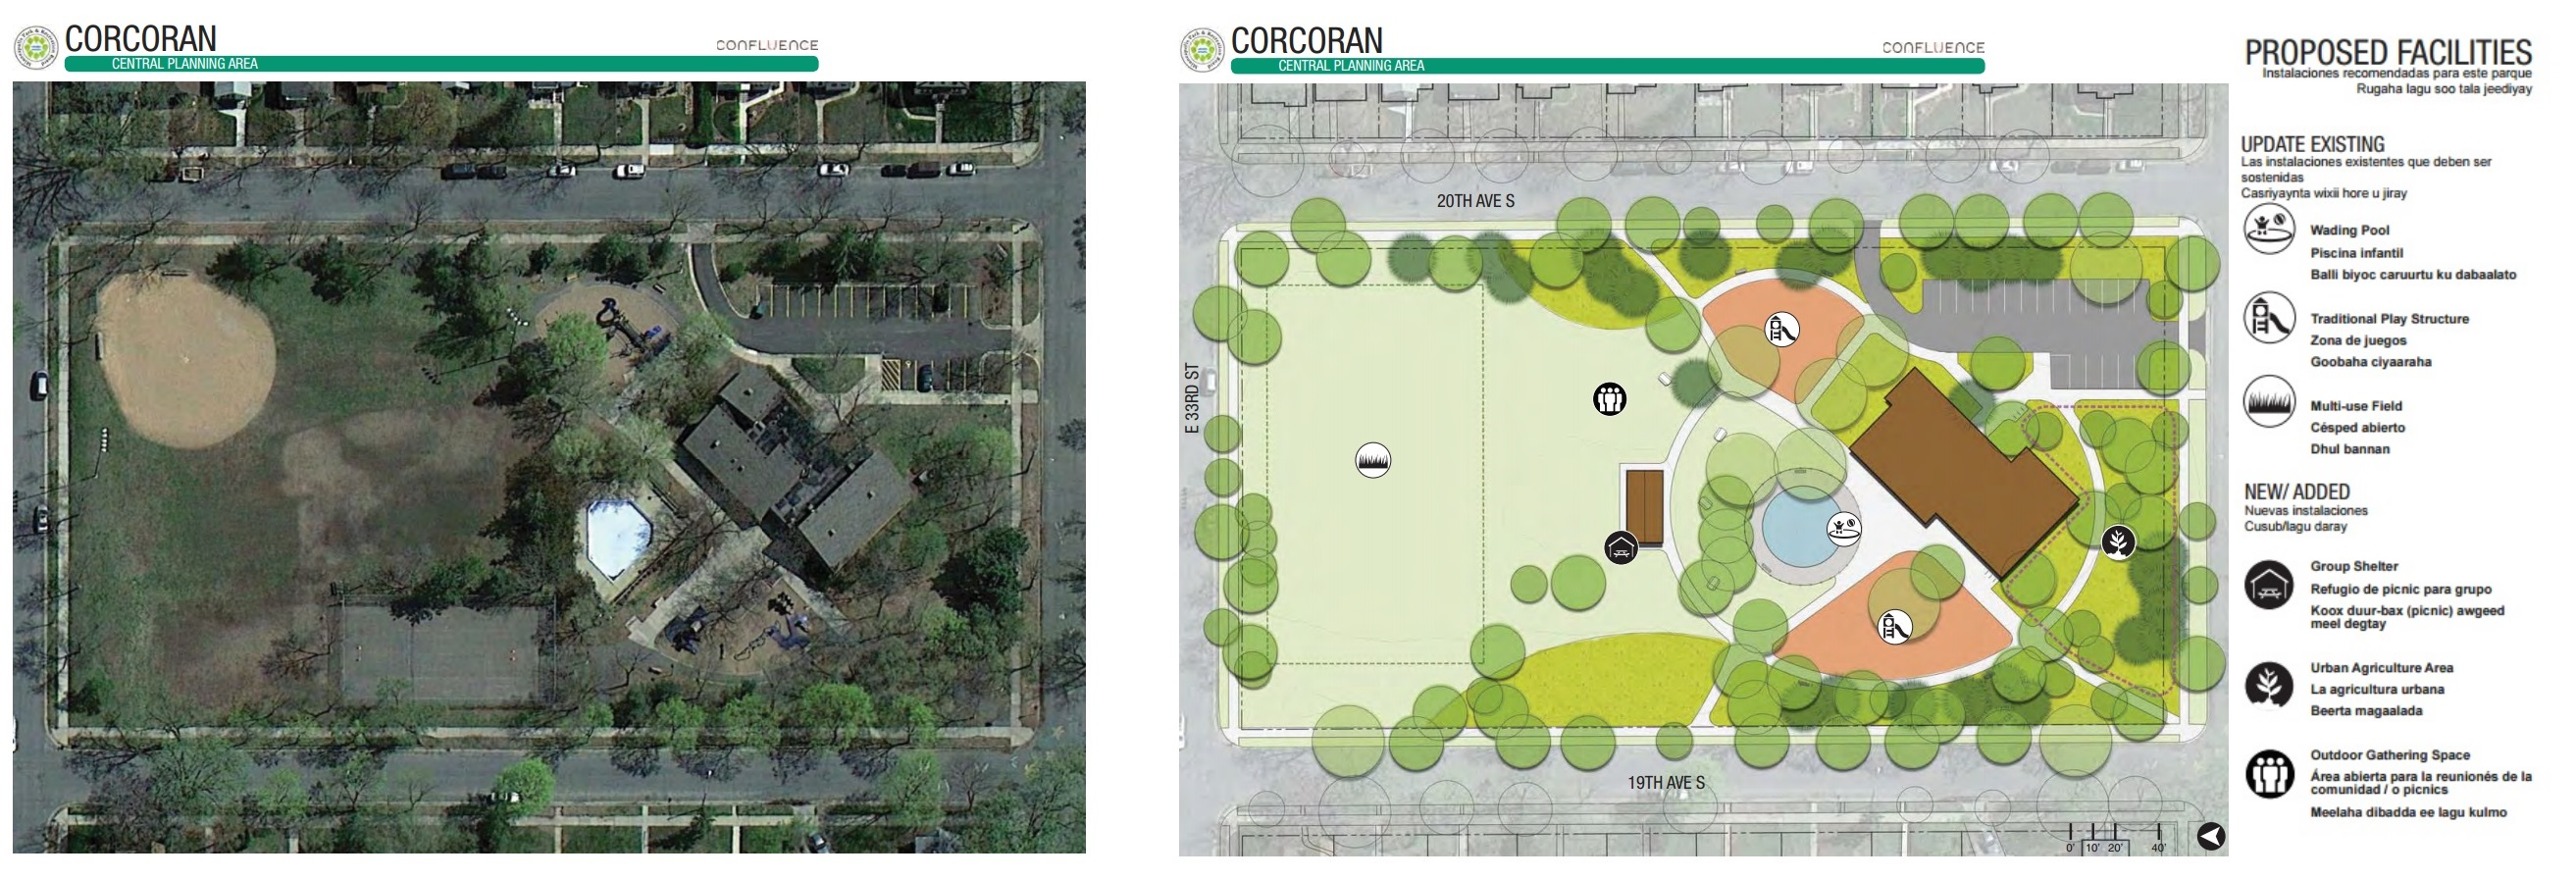 South_Side_Master_Plan_-_Preferred_Park_Concepts-_Corcoran_Park.jpg